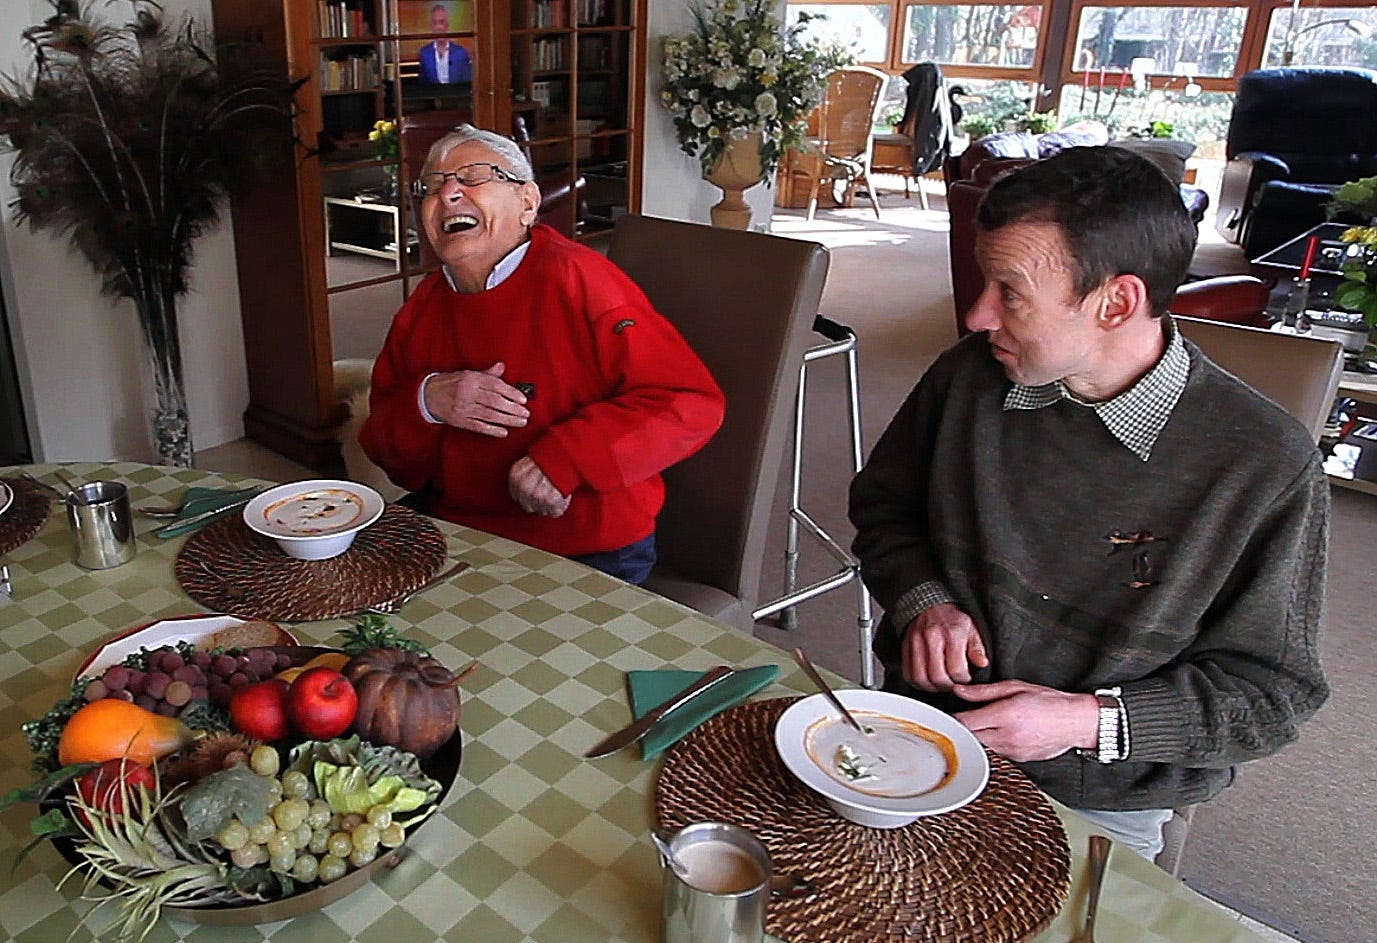 Like brothers, Dis, left, and Luc joke around during lunch at their home in Geel, Belgium. January 25, 2013.